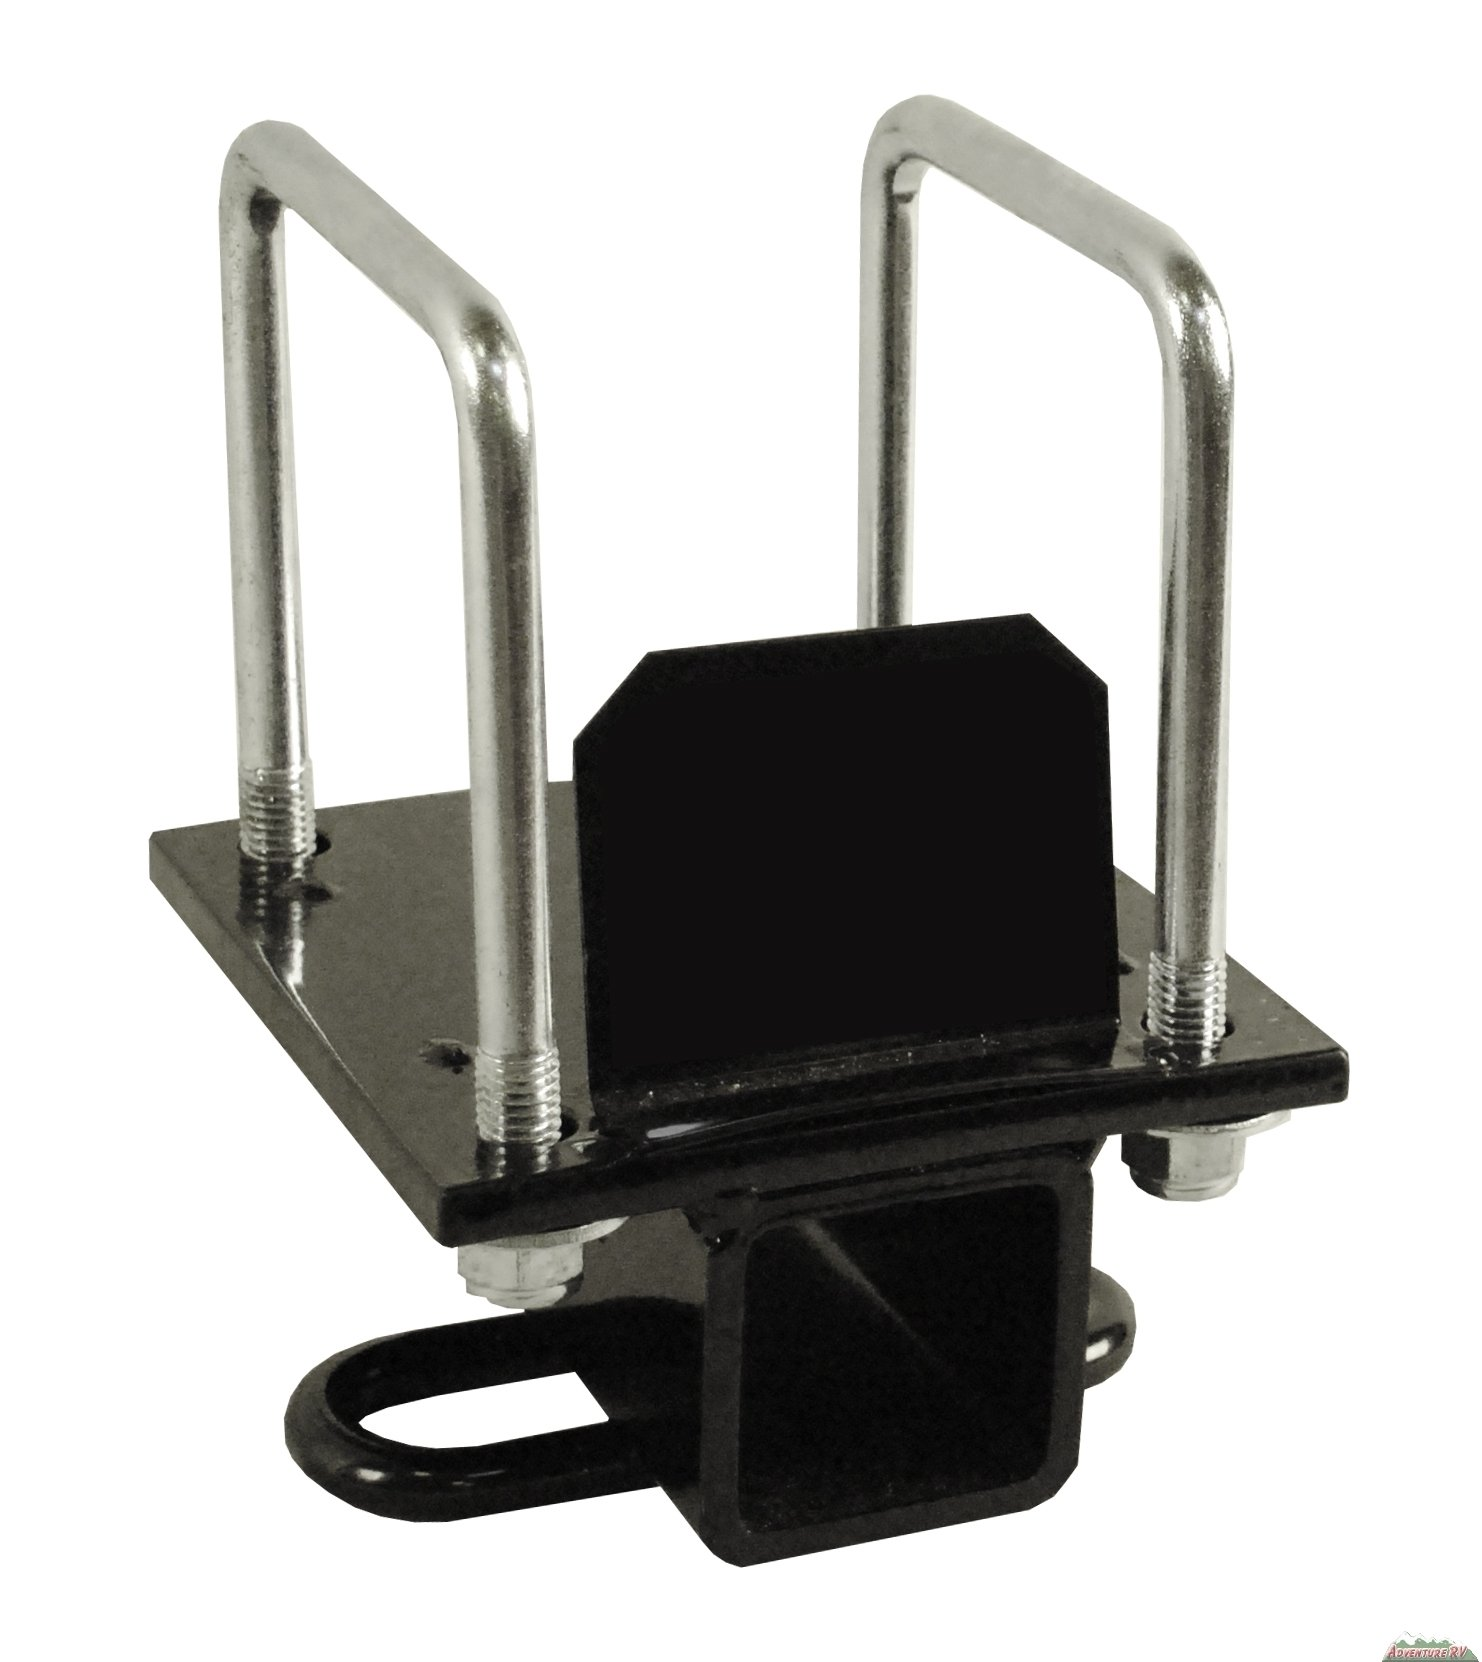 PMD Products RV 4'' Bolt Bumper Hitch Mount Receiver Adapter 3500lbs towing cargo bike rack for Camper Motorhome